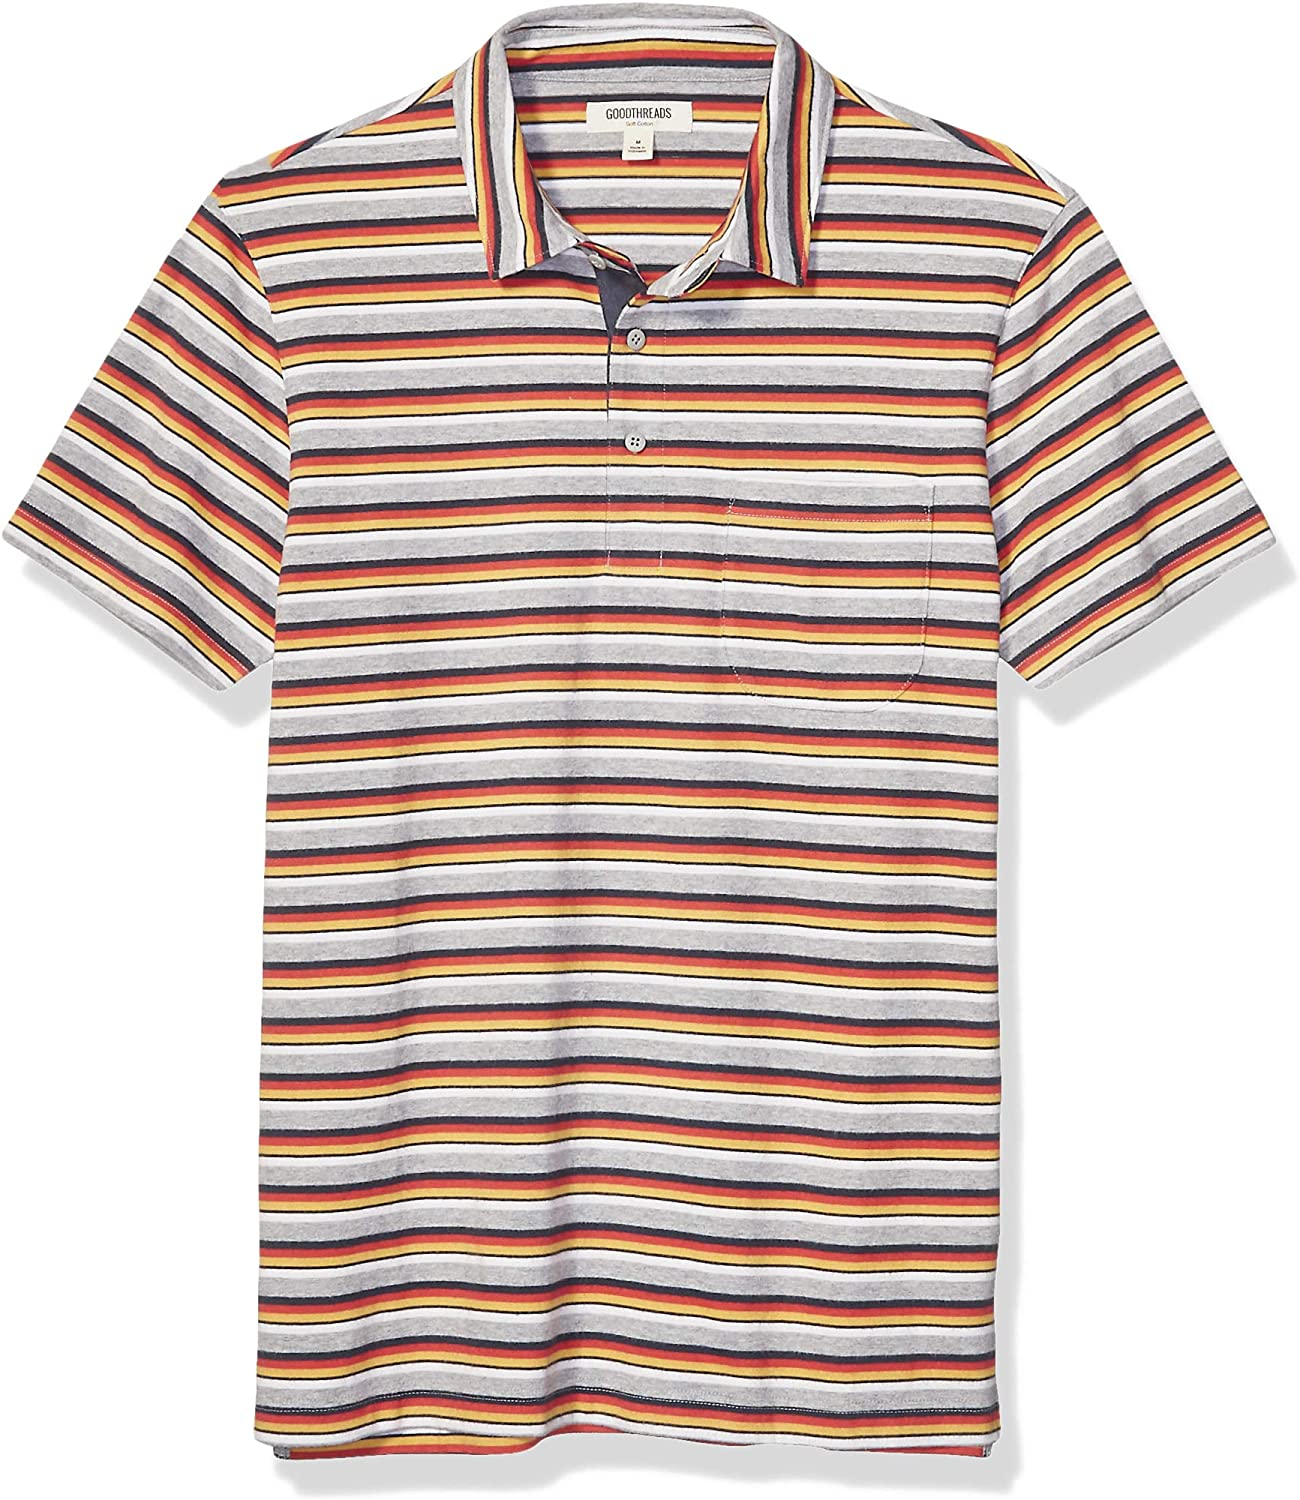 Brand - Goodthreads Men's Short-Sleeve Sueded Jersey Polo: Clothing